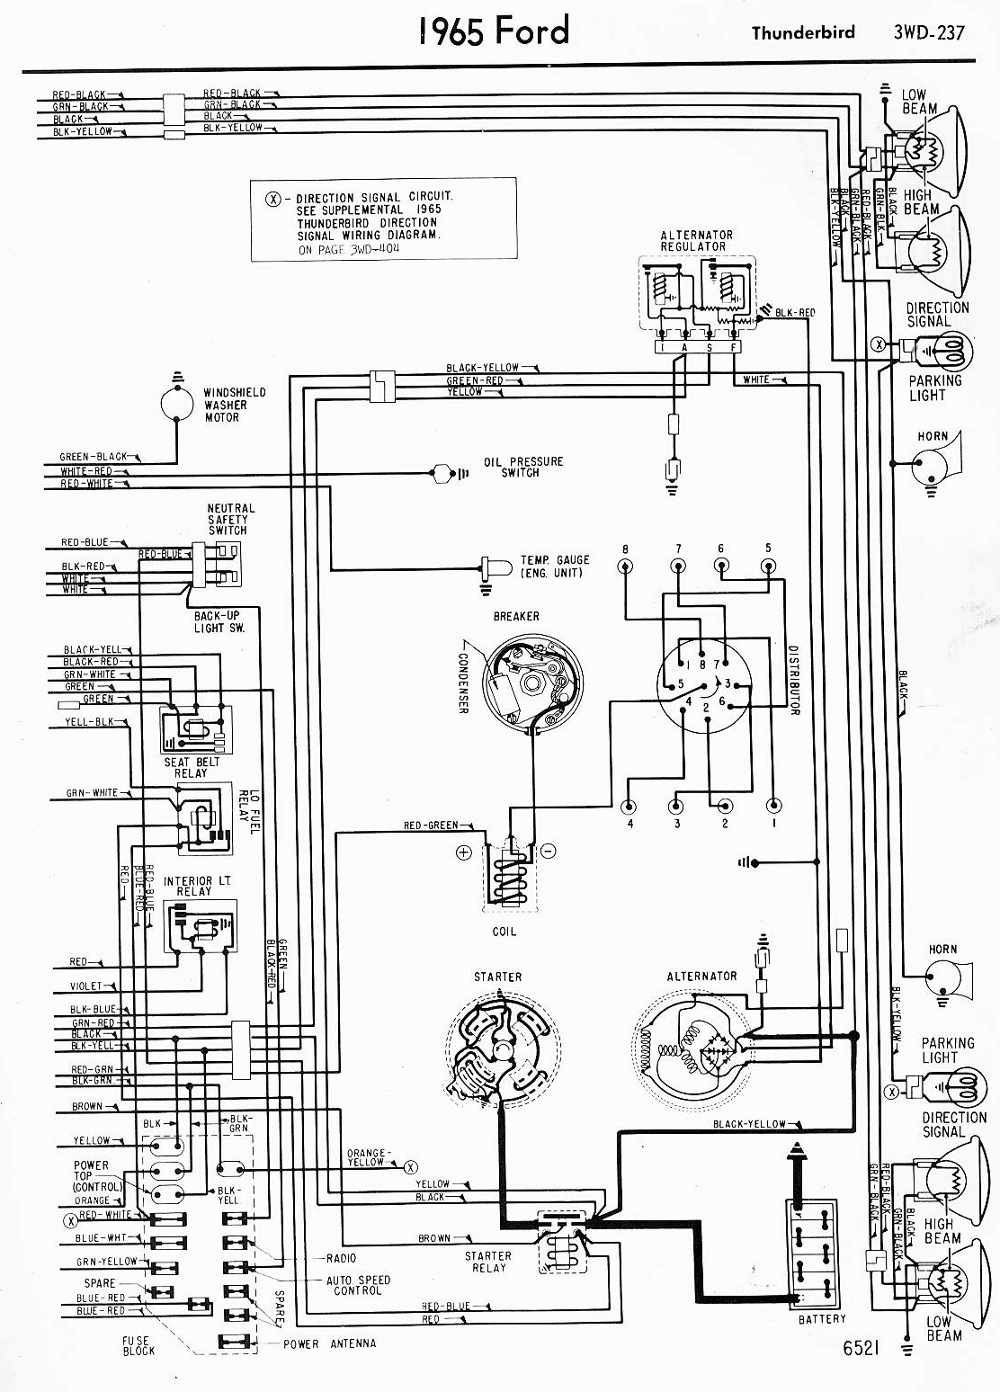 fader wiring diagram wiring diagram data  wiring diagram 1968 ford galaxie 500 #9